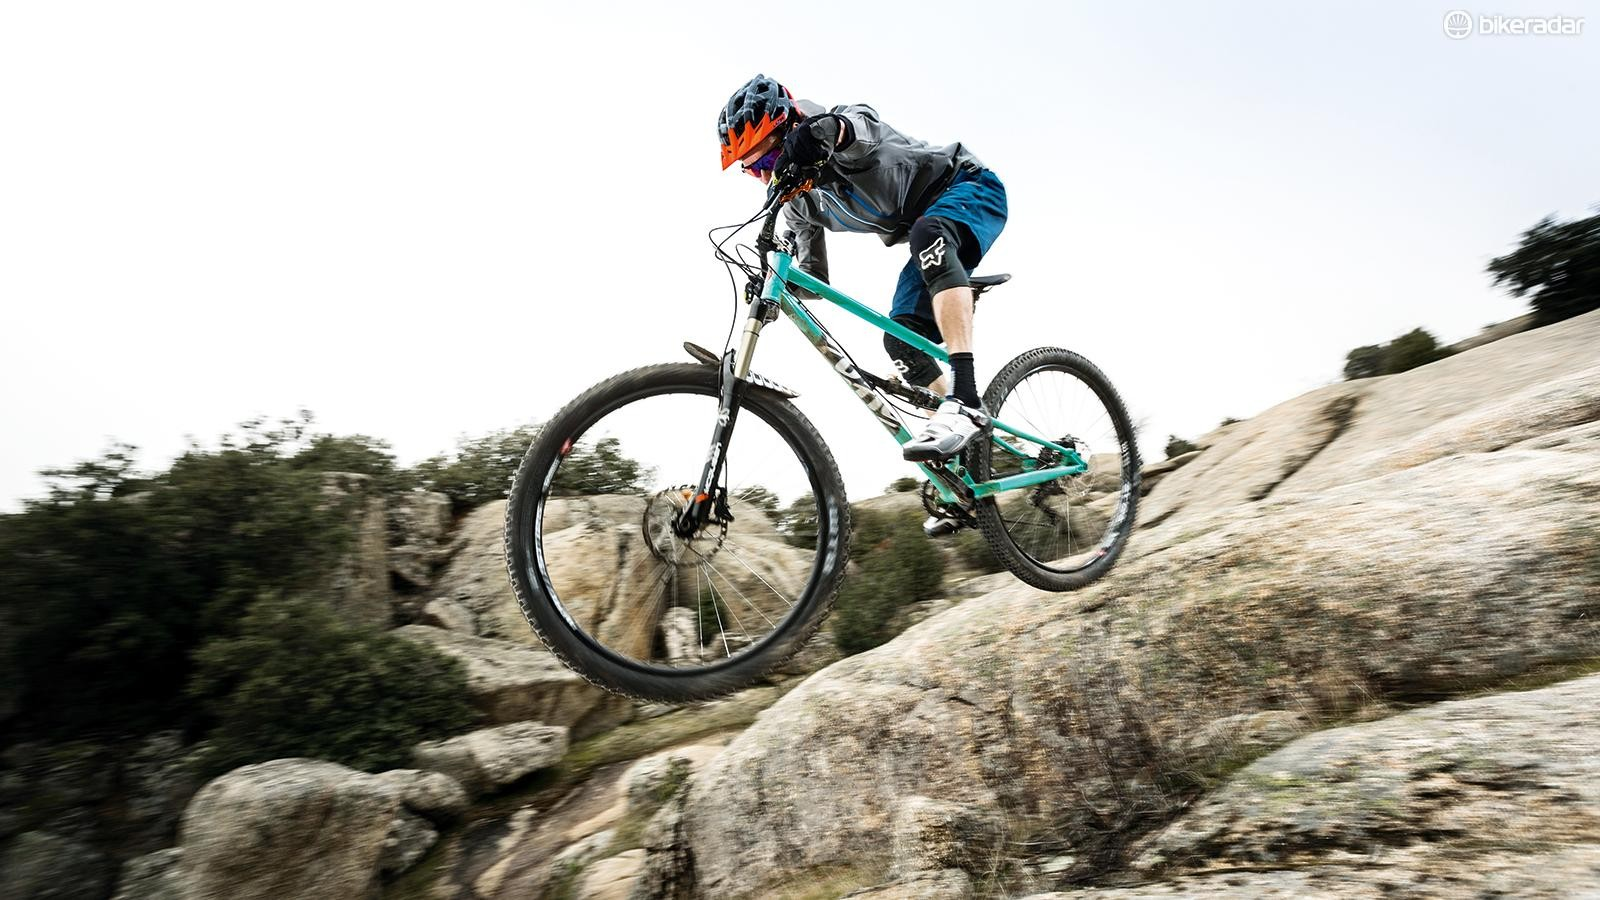 The bike is compatible with Plus or 29er wheel sizes